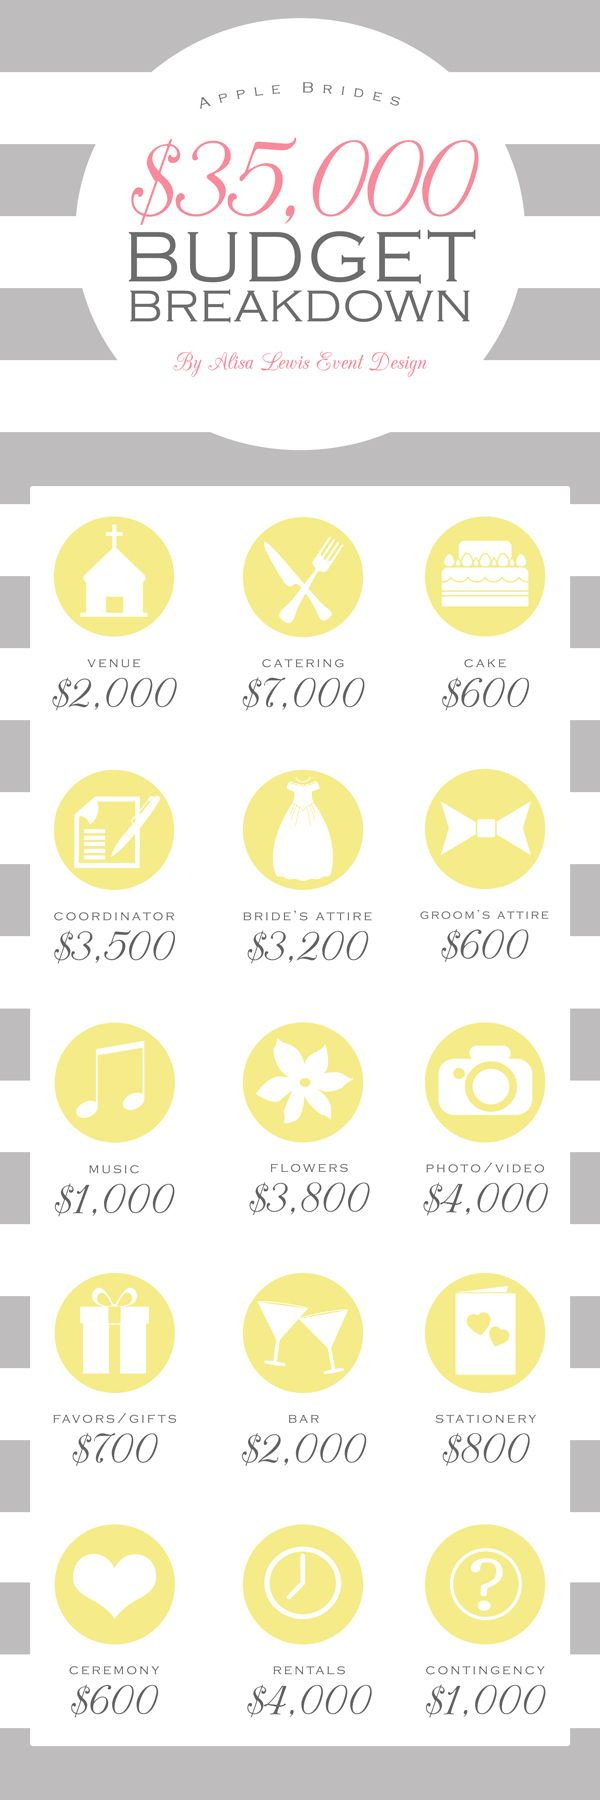 Budget Breakdown For A 35 000 Wedding